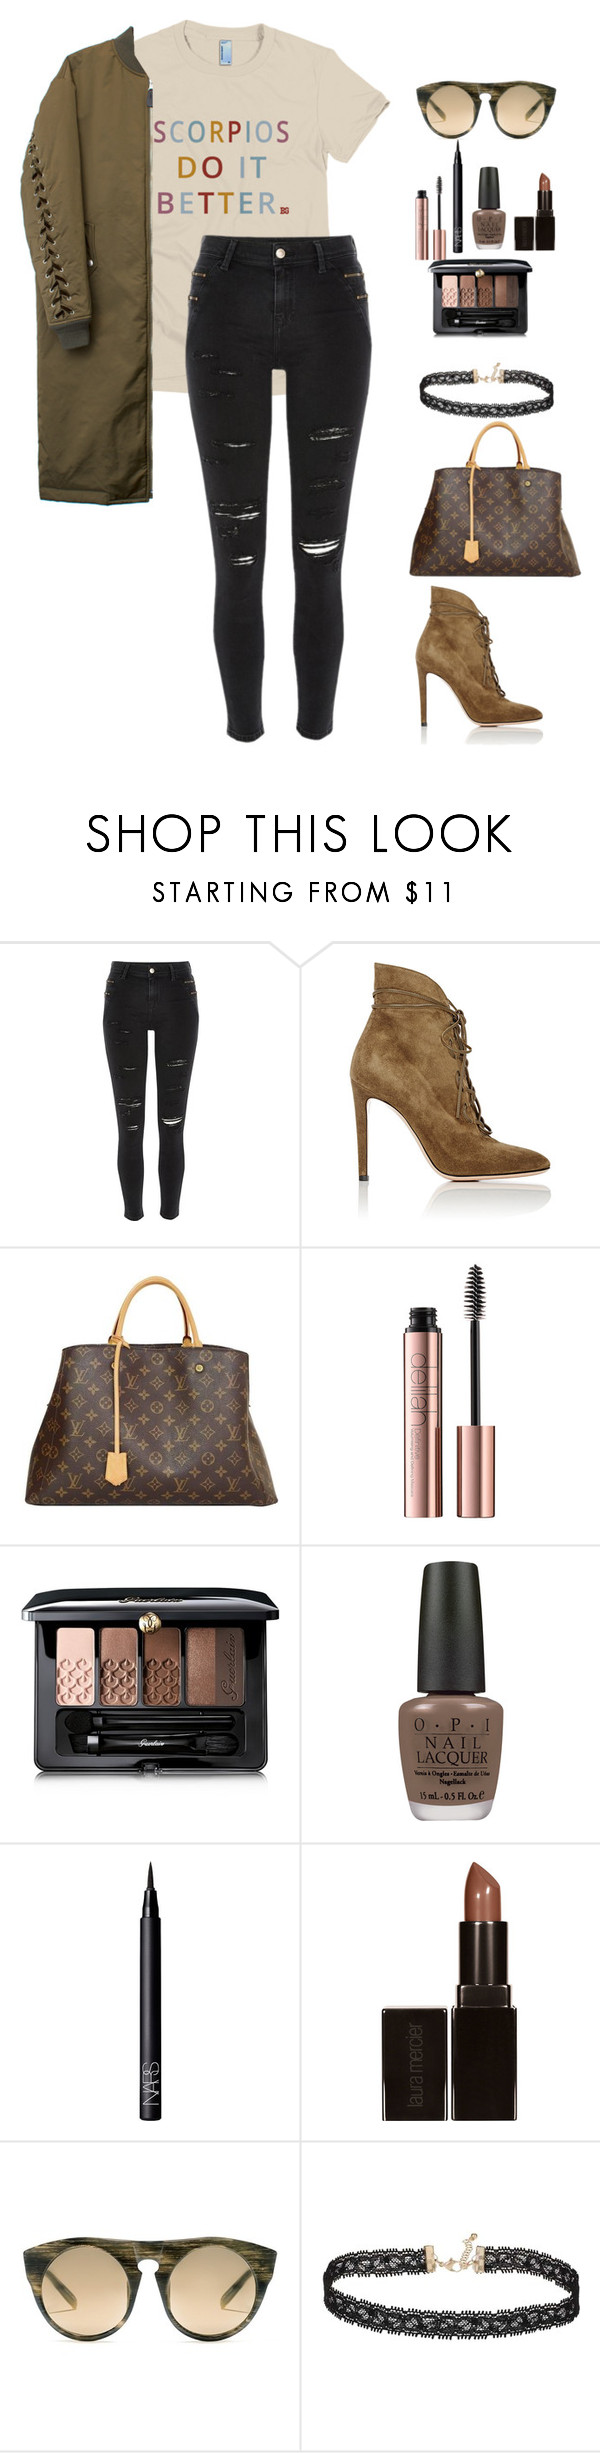 """""""Scorpios Do It Better"""" by birthdaygirlworld ❤ liked on Polyvore featuring River Island, Gianvito Rossi, Louis Vuitton, Guerlain, OPI, NARS Cosmetics, Laura Mercier, Alexander Wang and Miss Selfridge"""